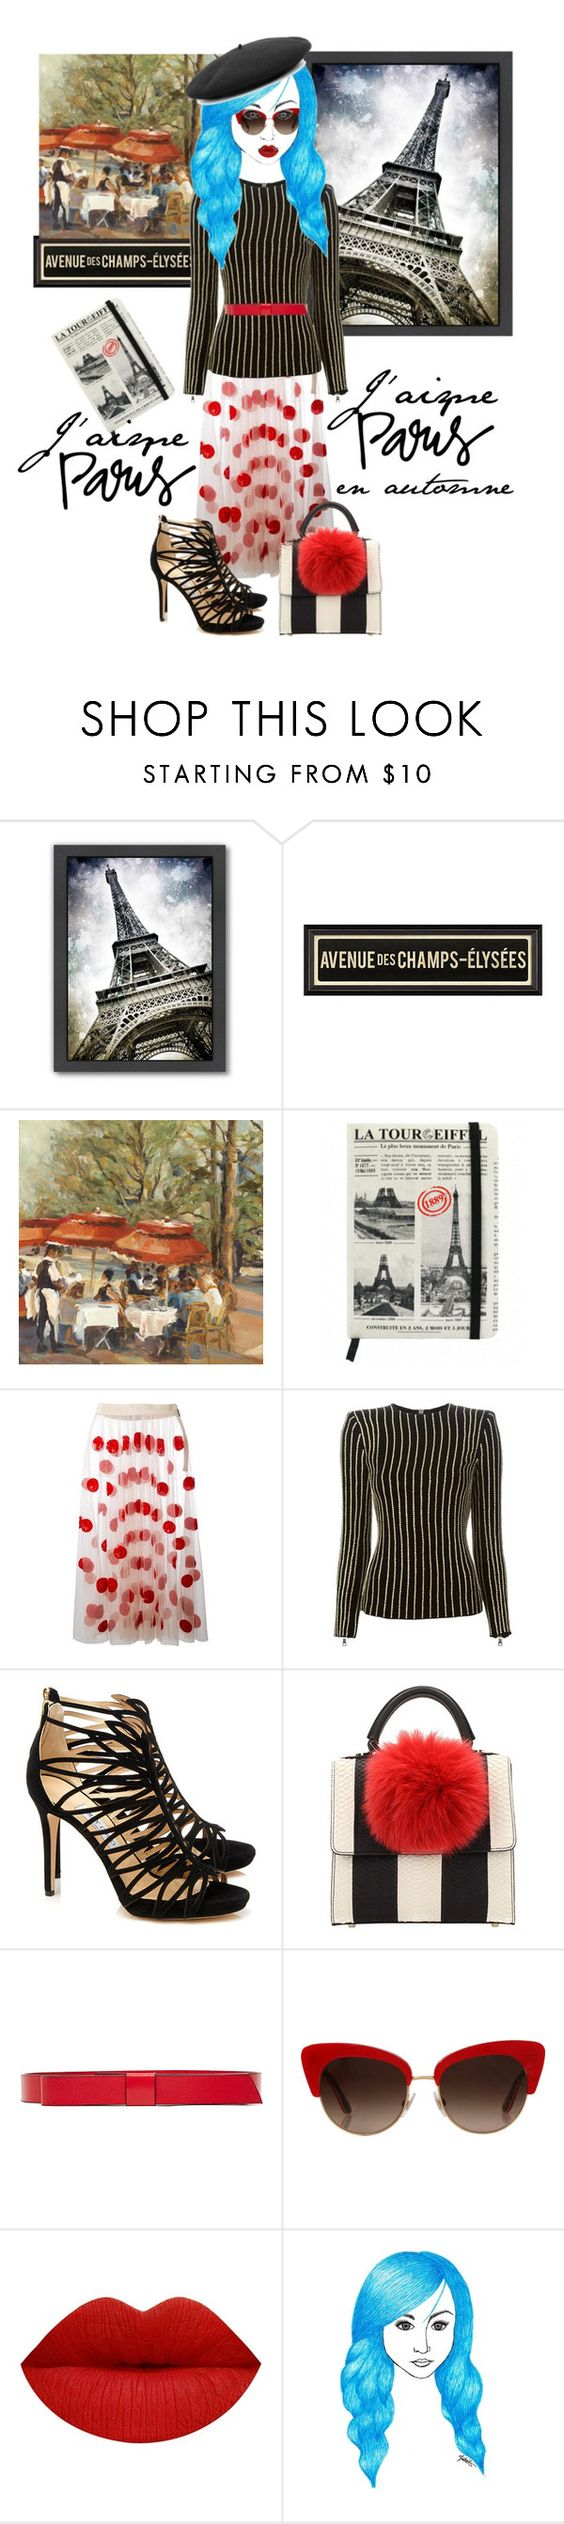 """I love Paris"" by rehtaeh69 ❤ liked on Polyvore featuring Americanflat, MSGM, Balmain, Jimmy Choo, Les Petits Joueurs, Marni, Dolce&Gabbana and Gucci"